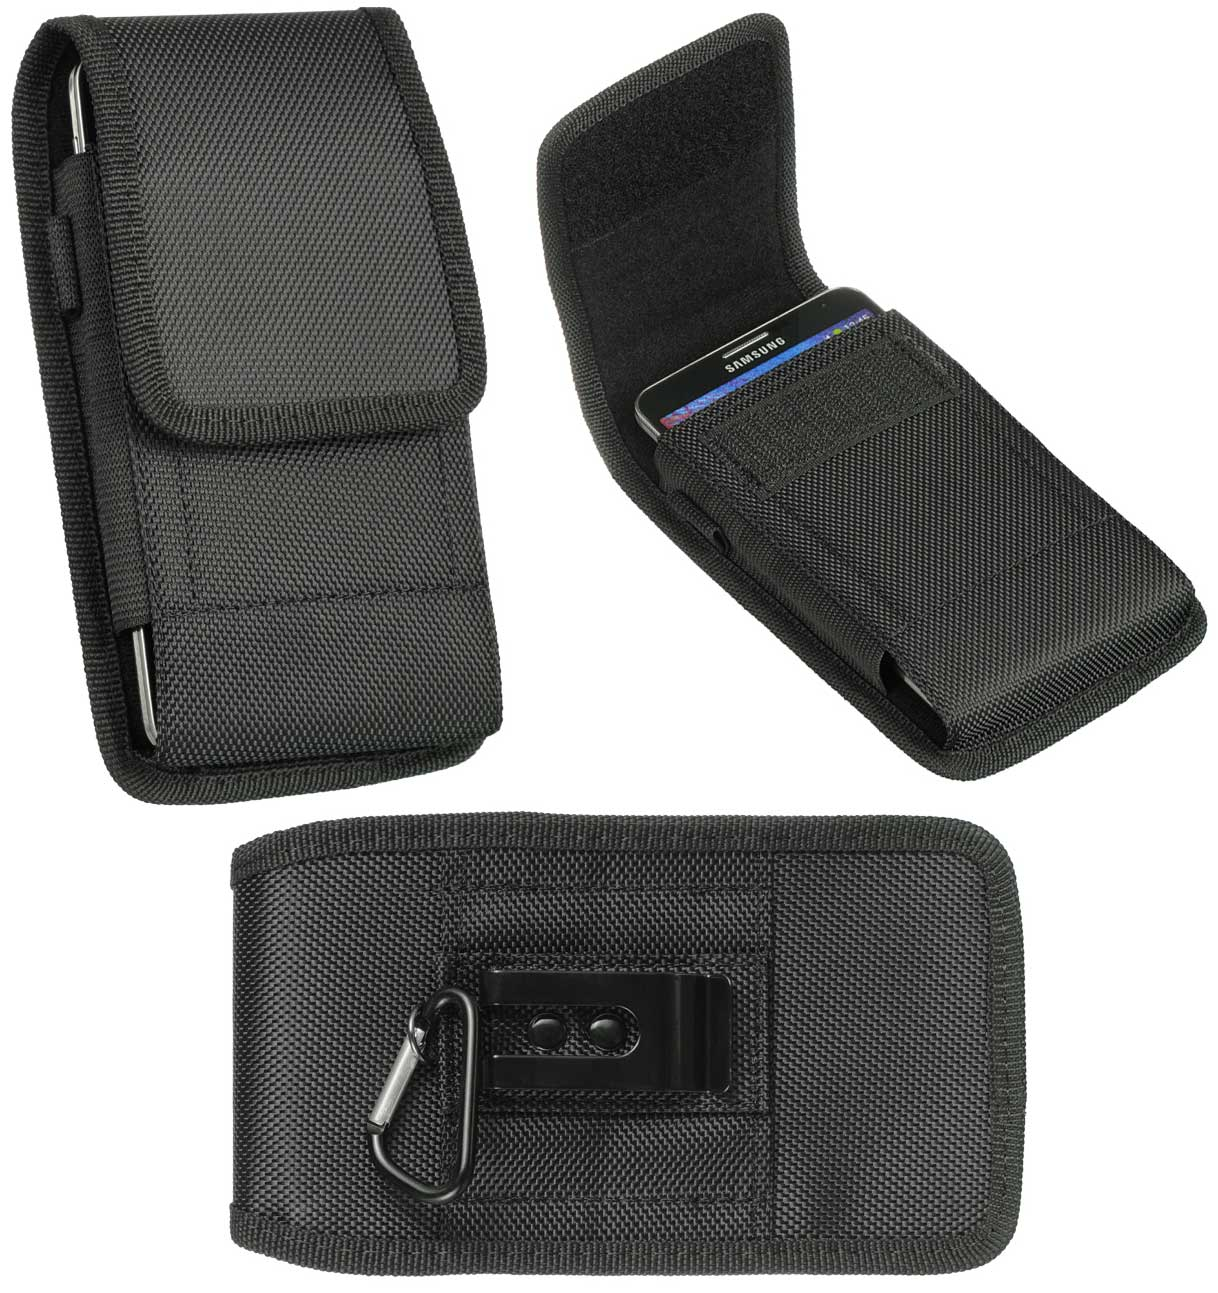 Nokia Lumia 730 Neoprene Nylon Case Pouch Clip Hook Black